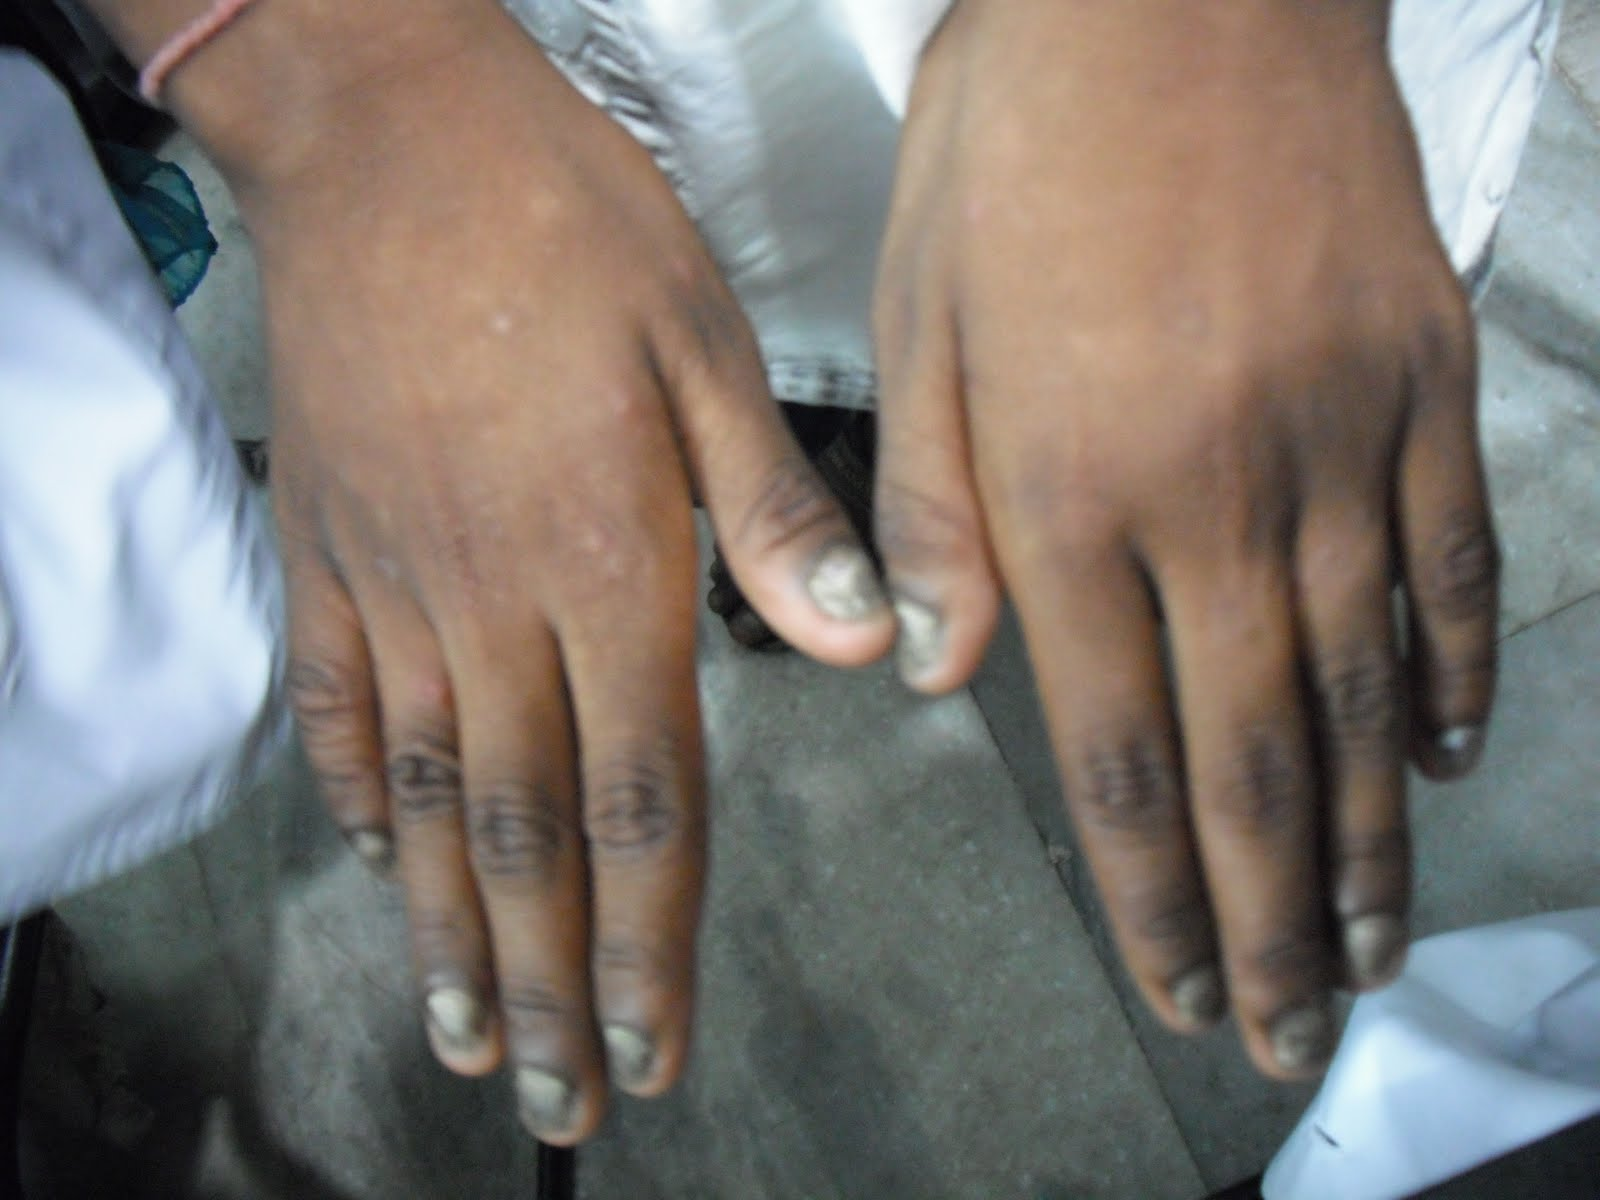 Dermacoster: 20 nail dystrophy